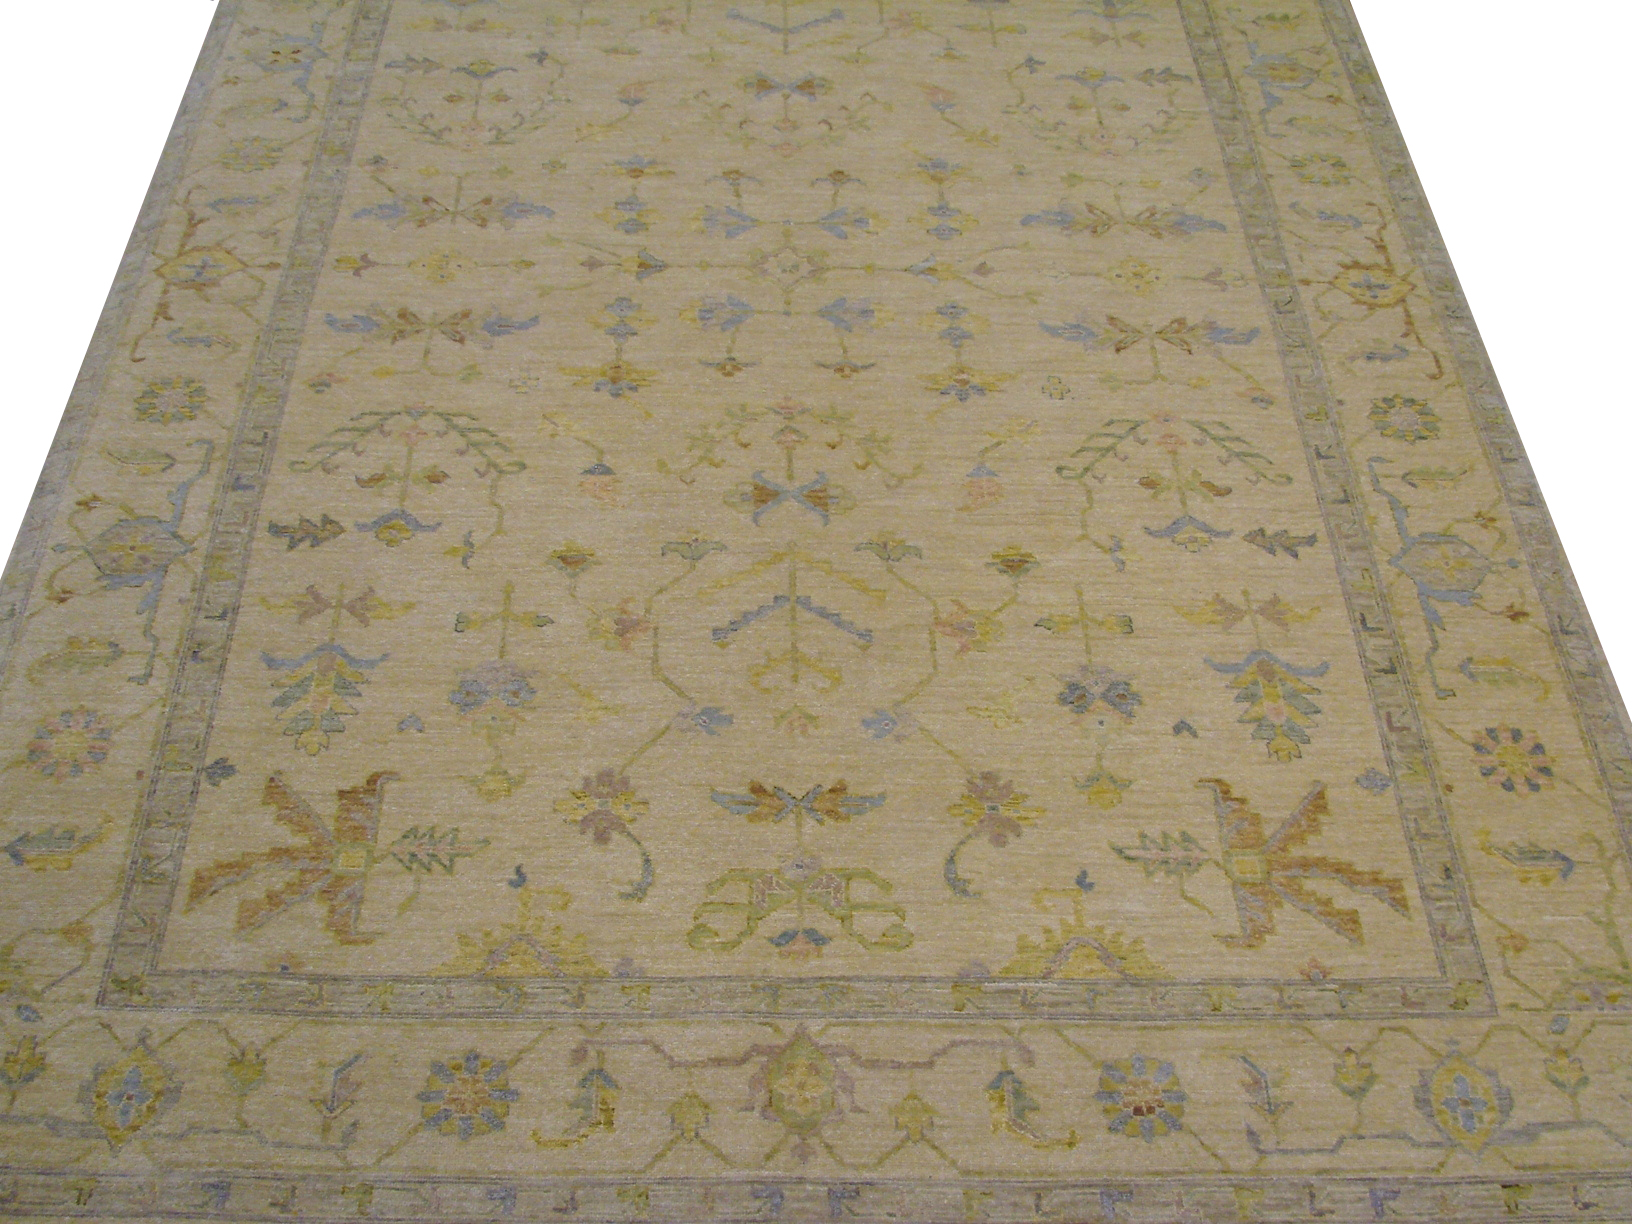 10x14 Traditional Hand Knotted Wool Area Rug - MR014068